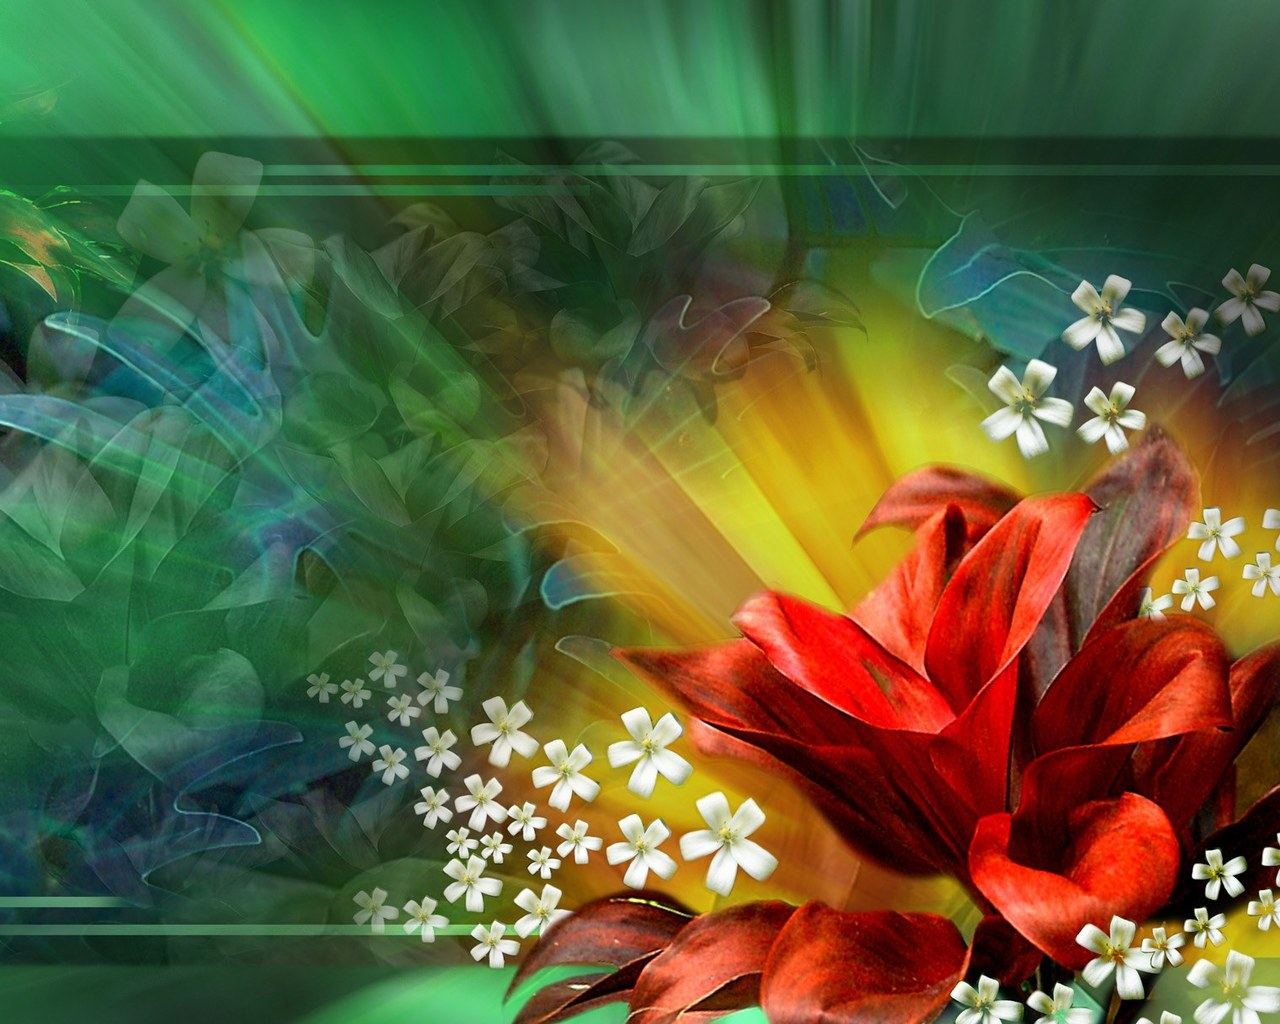 Wallpaper Downloadable